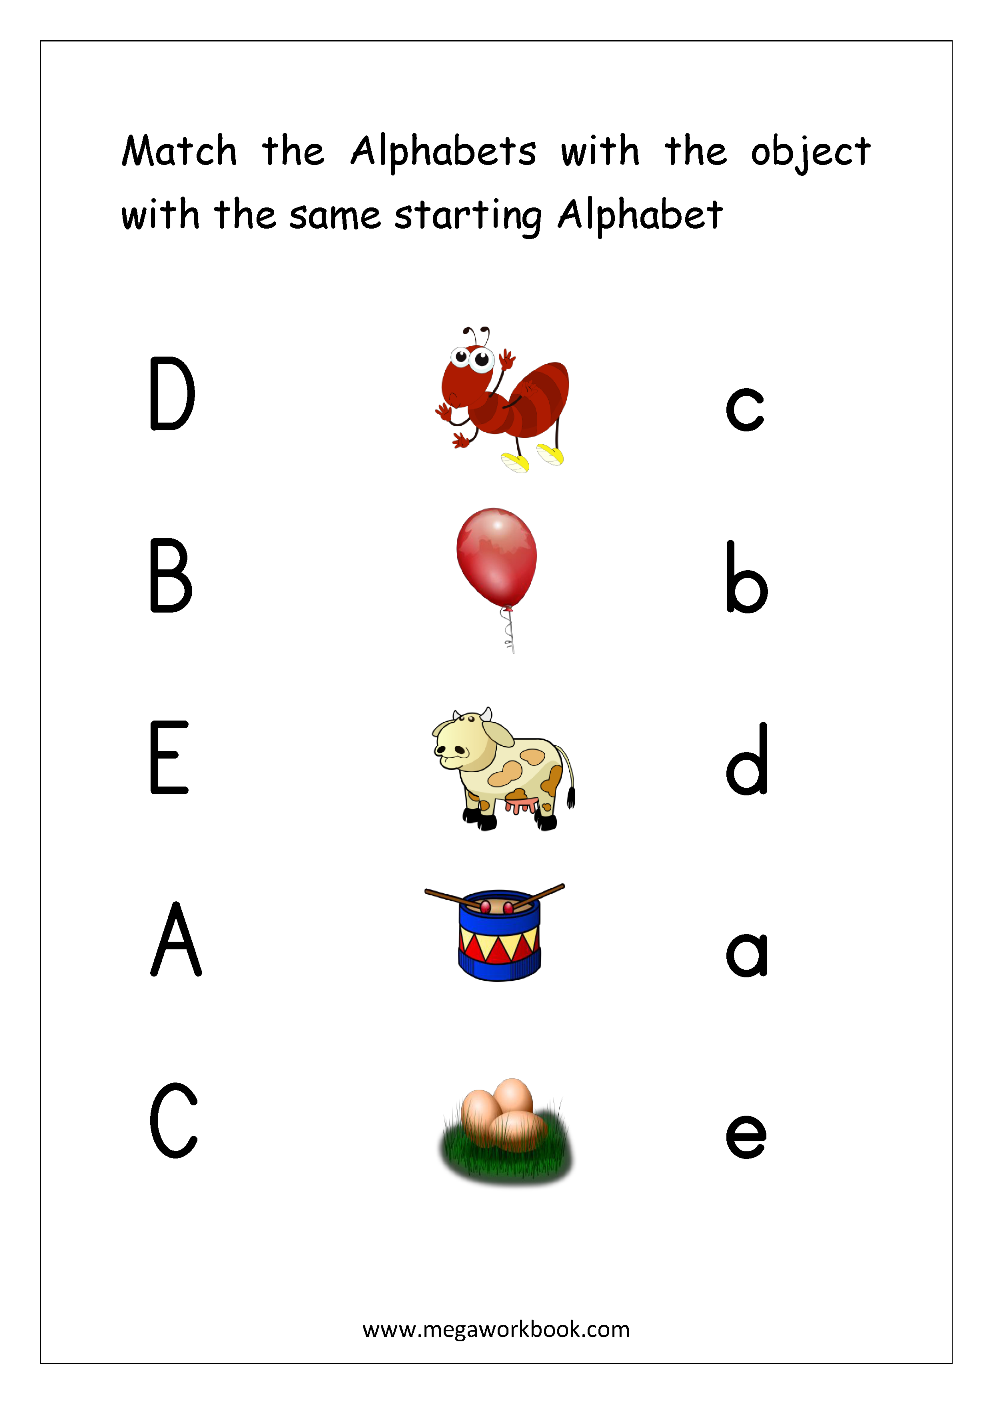 Free English Worksheets - Alphabet Matching - Megaworkbook regarding Alphabet Matching Worksheets Pdf